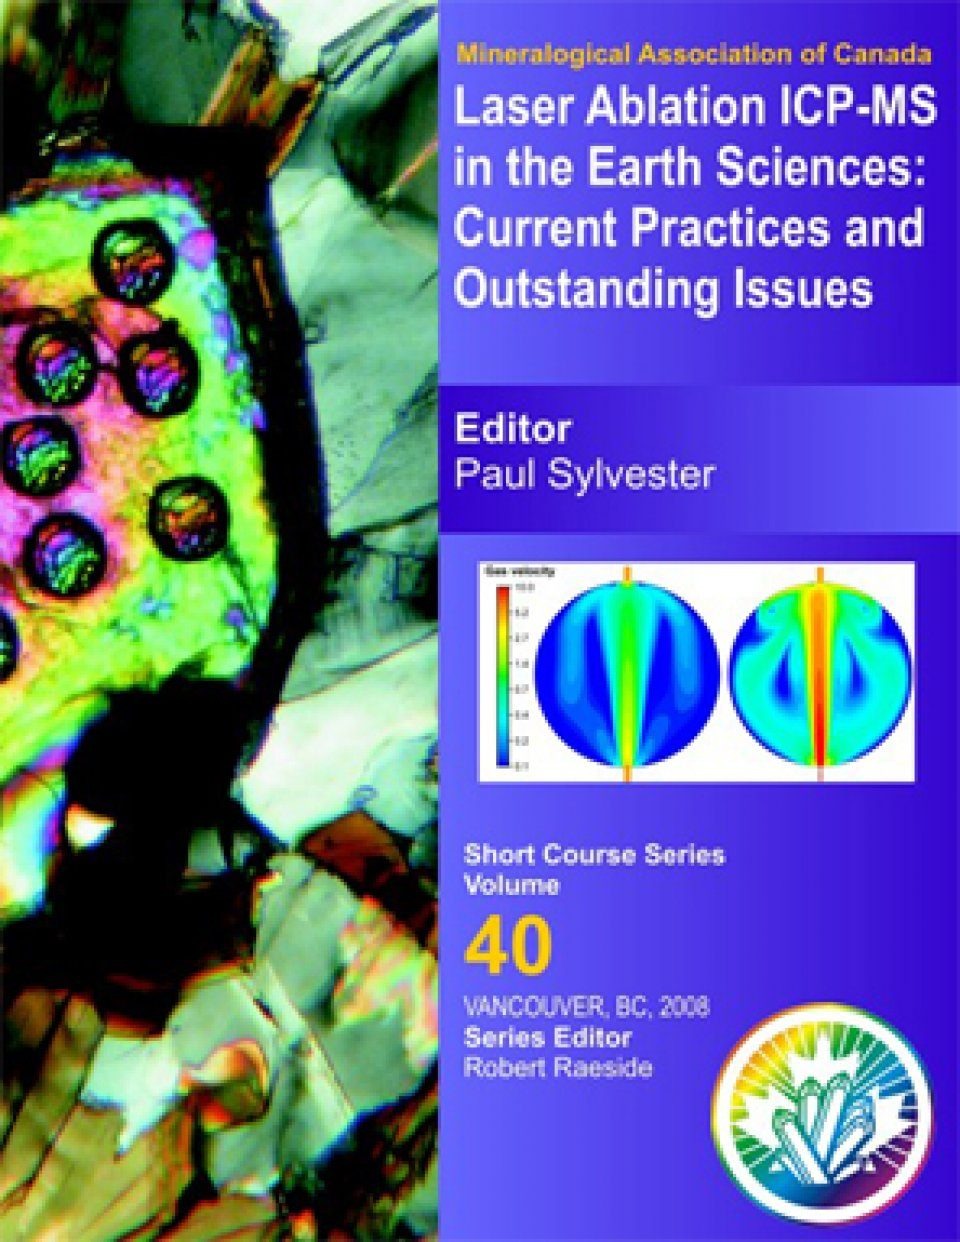 Laser Ablation ICP-MS in the Earth Sciences: Current Practices and Outstanding Issues